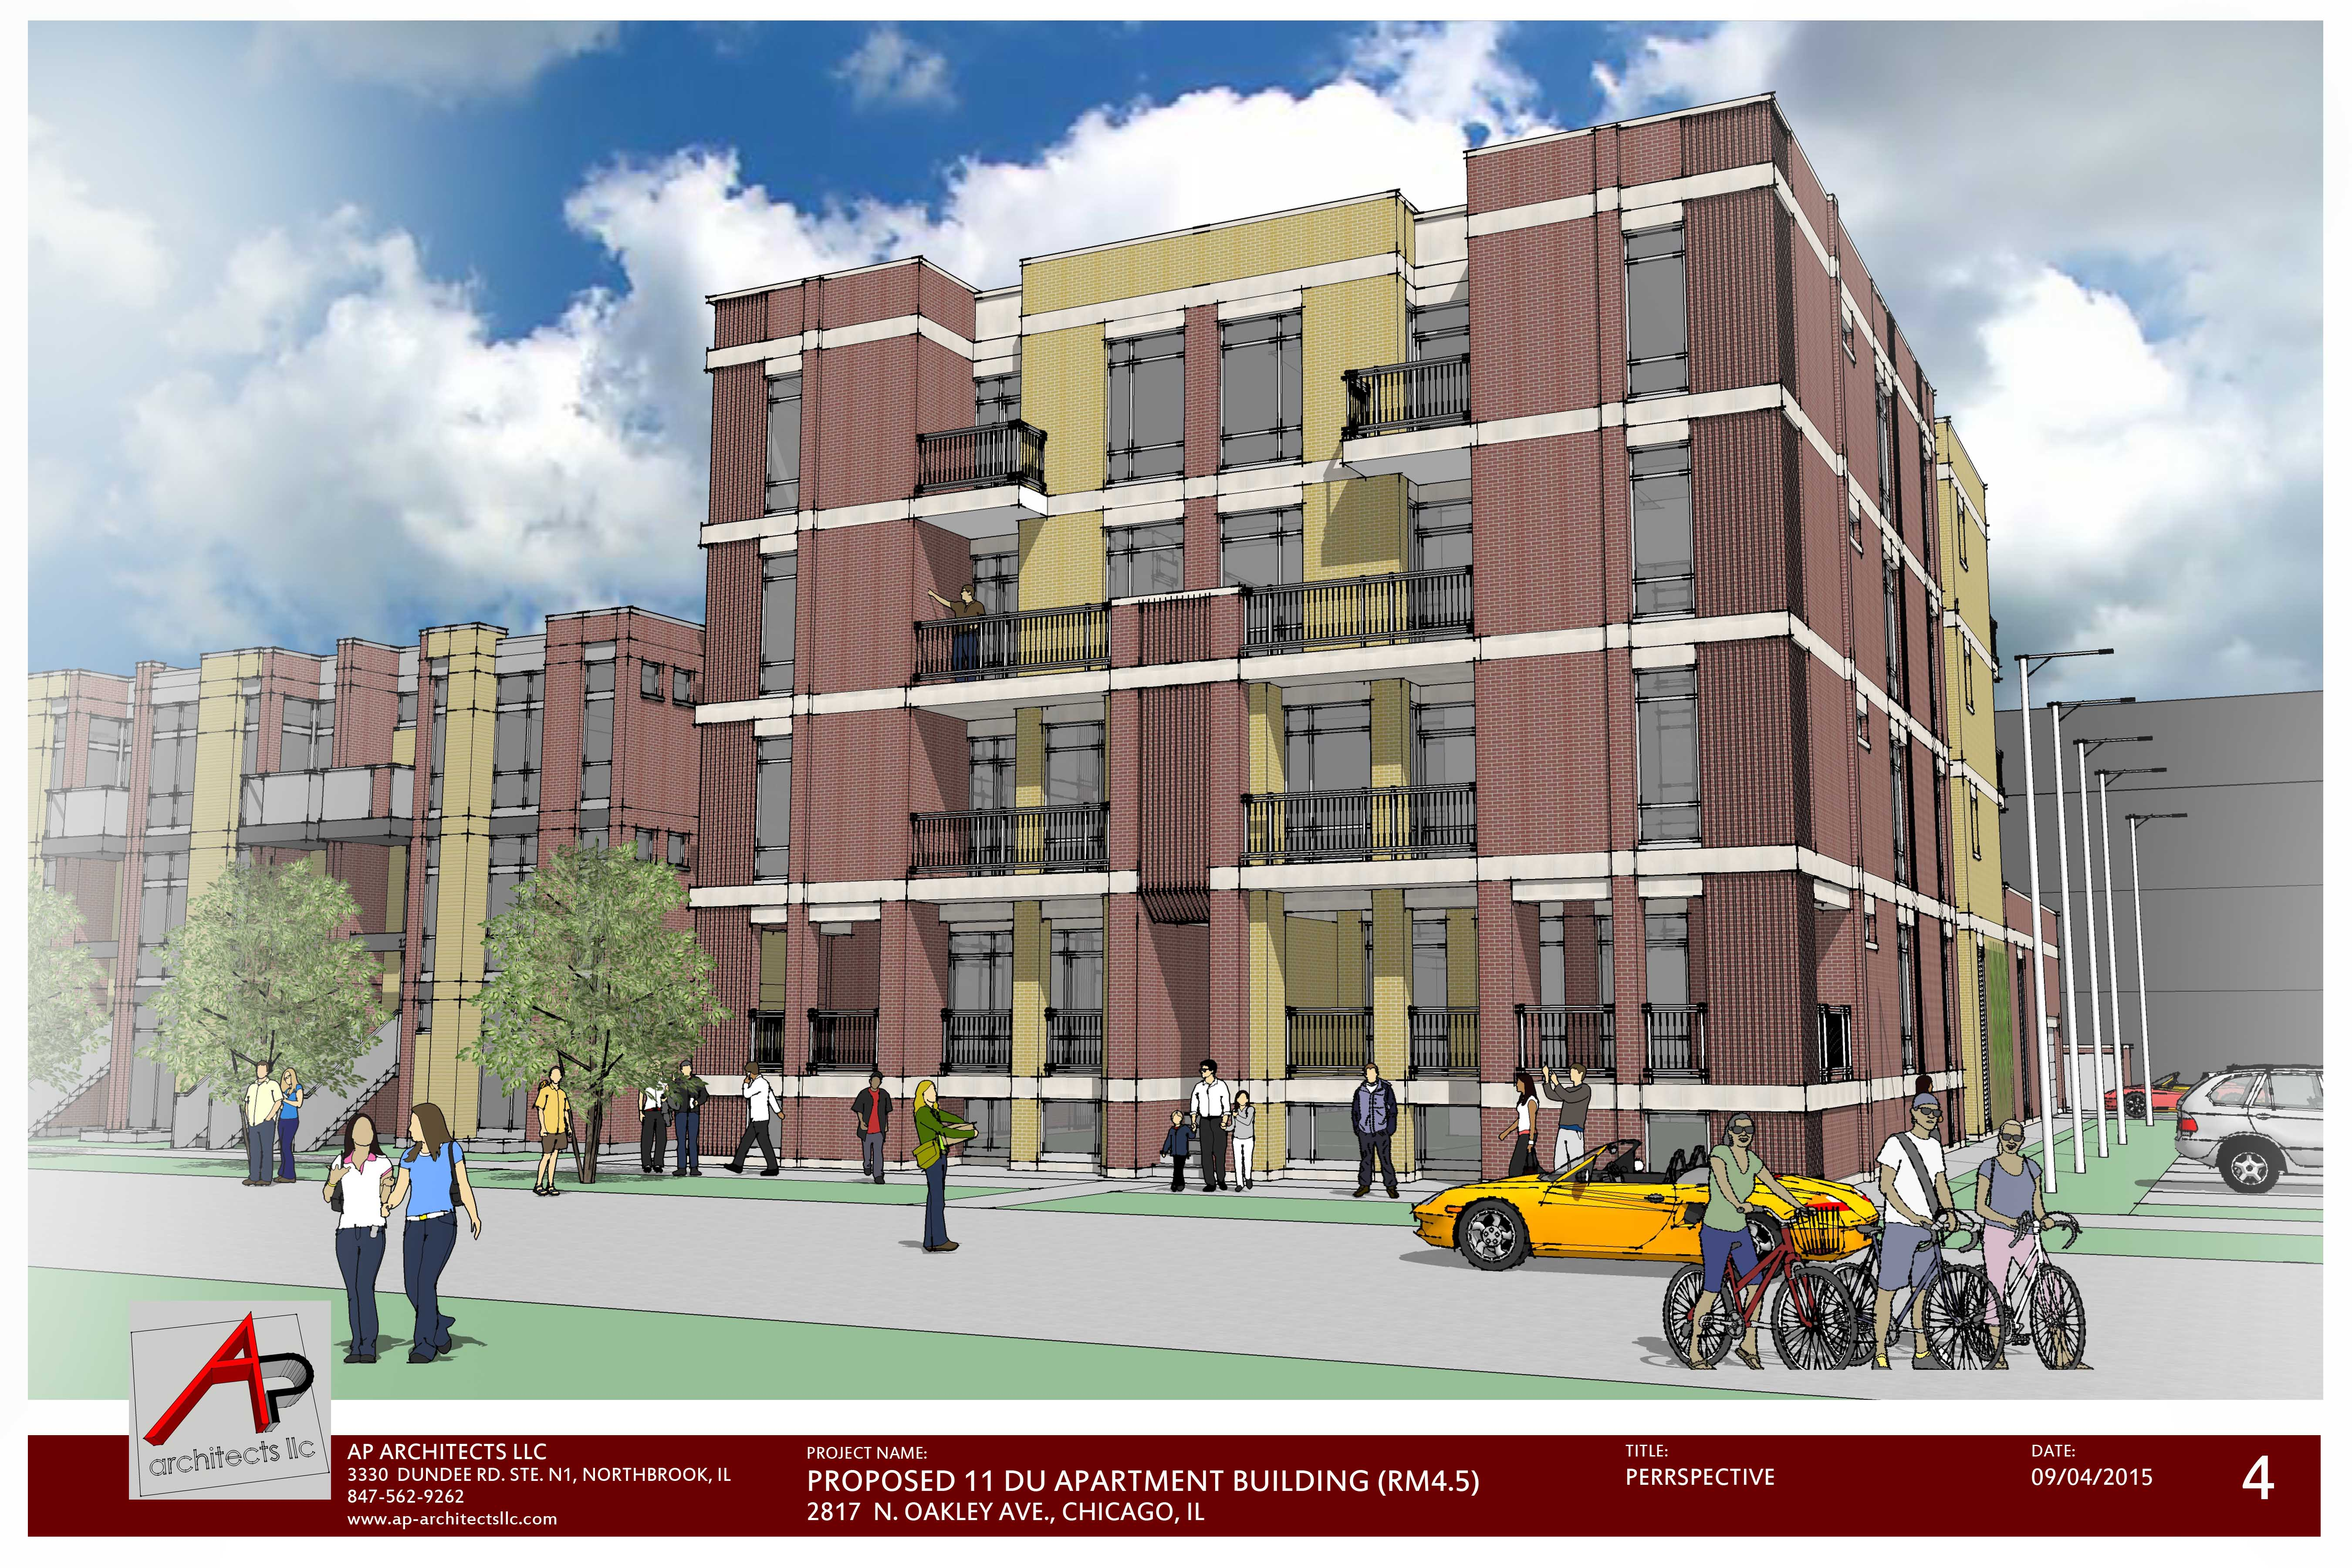 Proposed 11 DU Apartment Building 2817 N. Oakley Ave - Perspective View